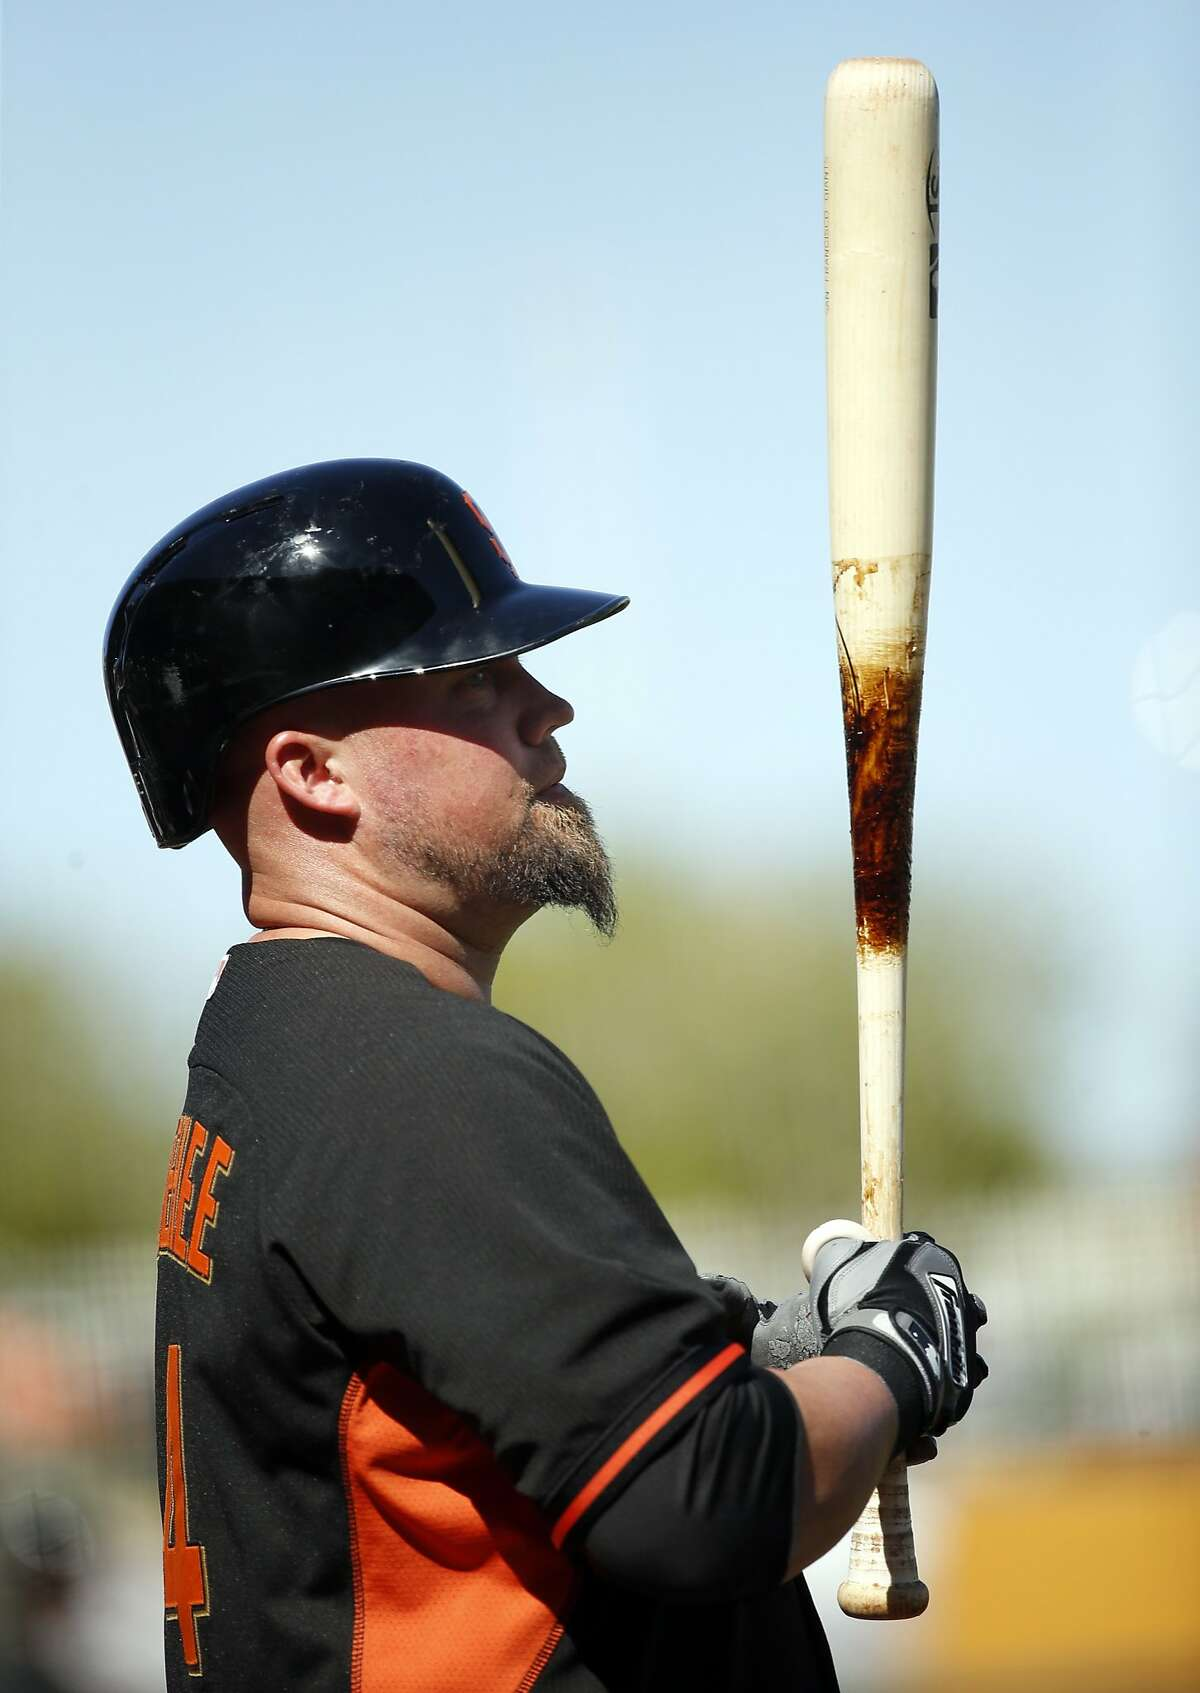 San Francisco Giants' Casey McGehee against Texas Rangers in Spring Training Cactus League game at Surprise Stadium in Surprise, Arizona, on Friday, March 6, 2015.